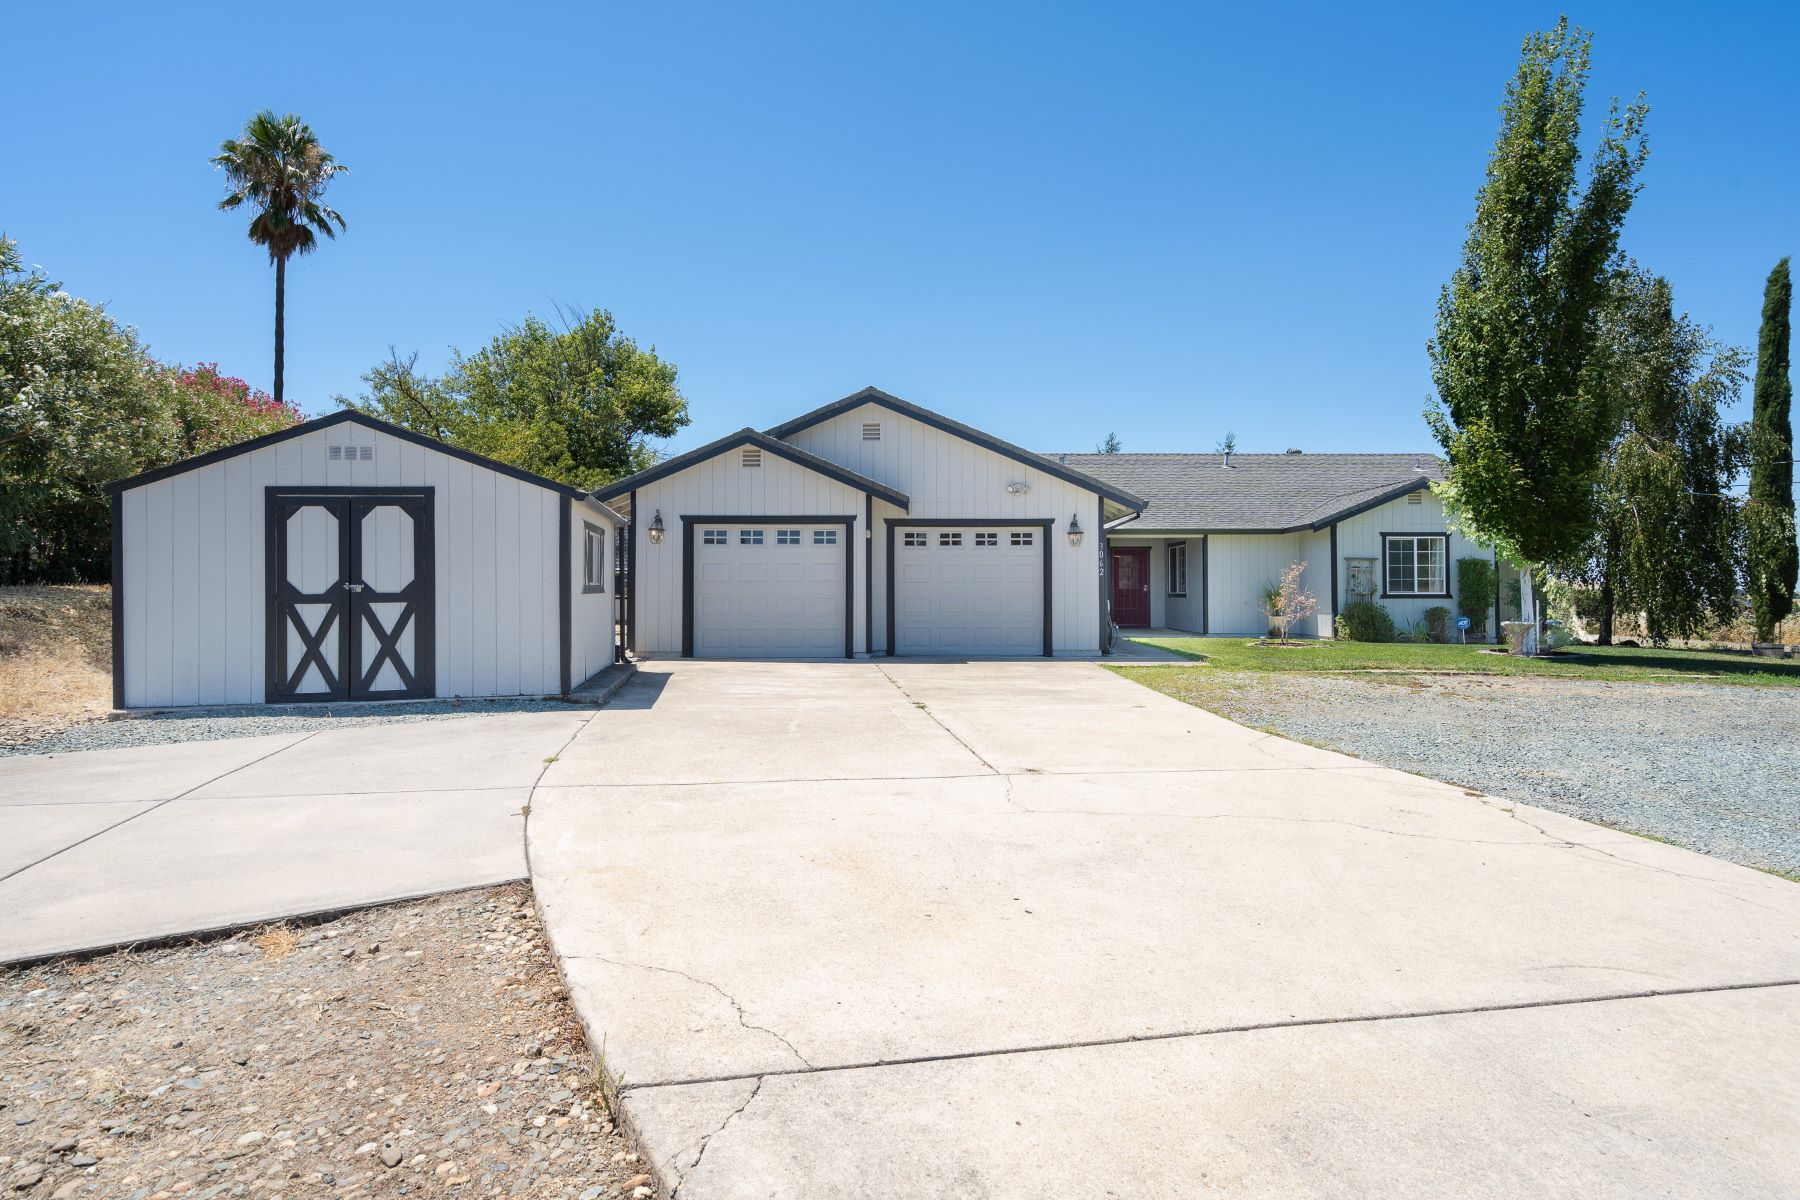 Other Residential Homes for Active at 3062 Village, Ione, CA, 95640 3062 Village Ione, California 95640 United States